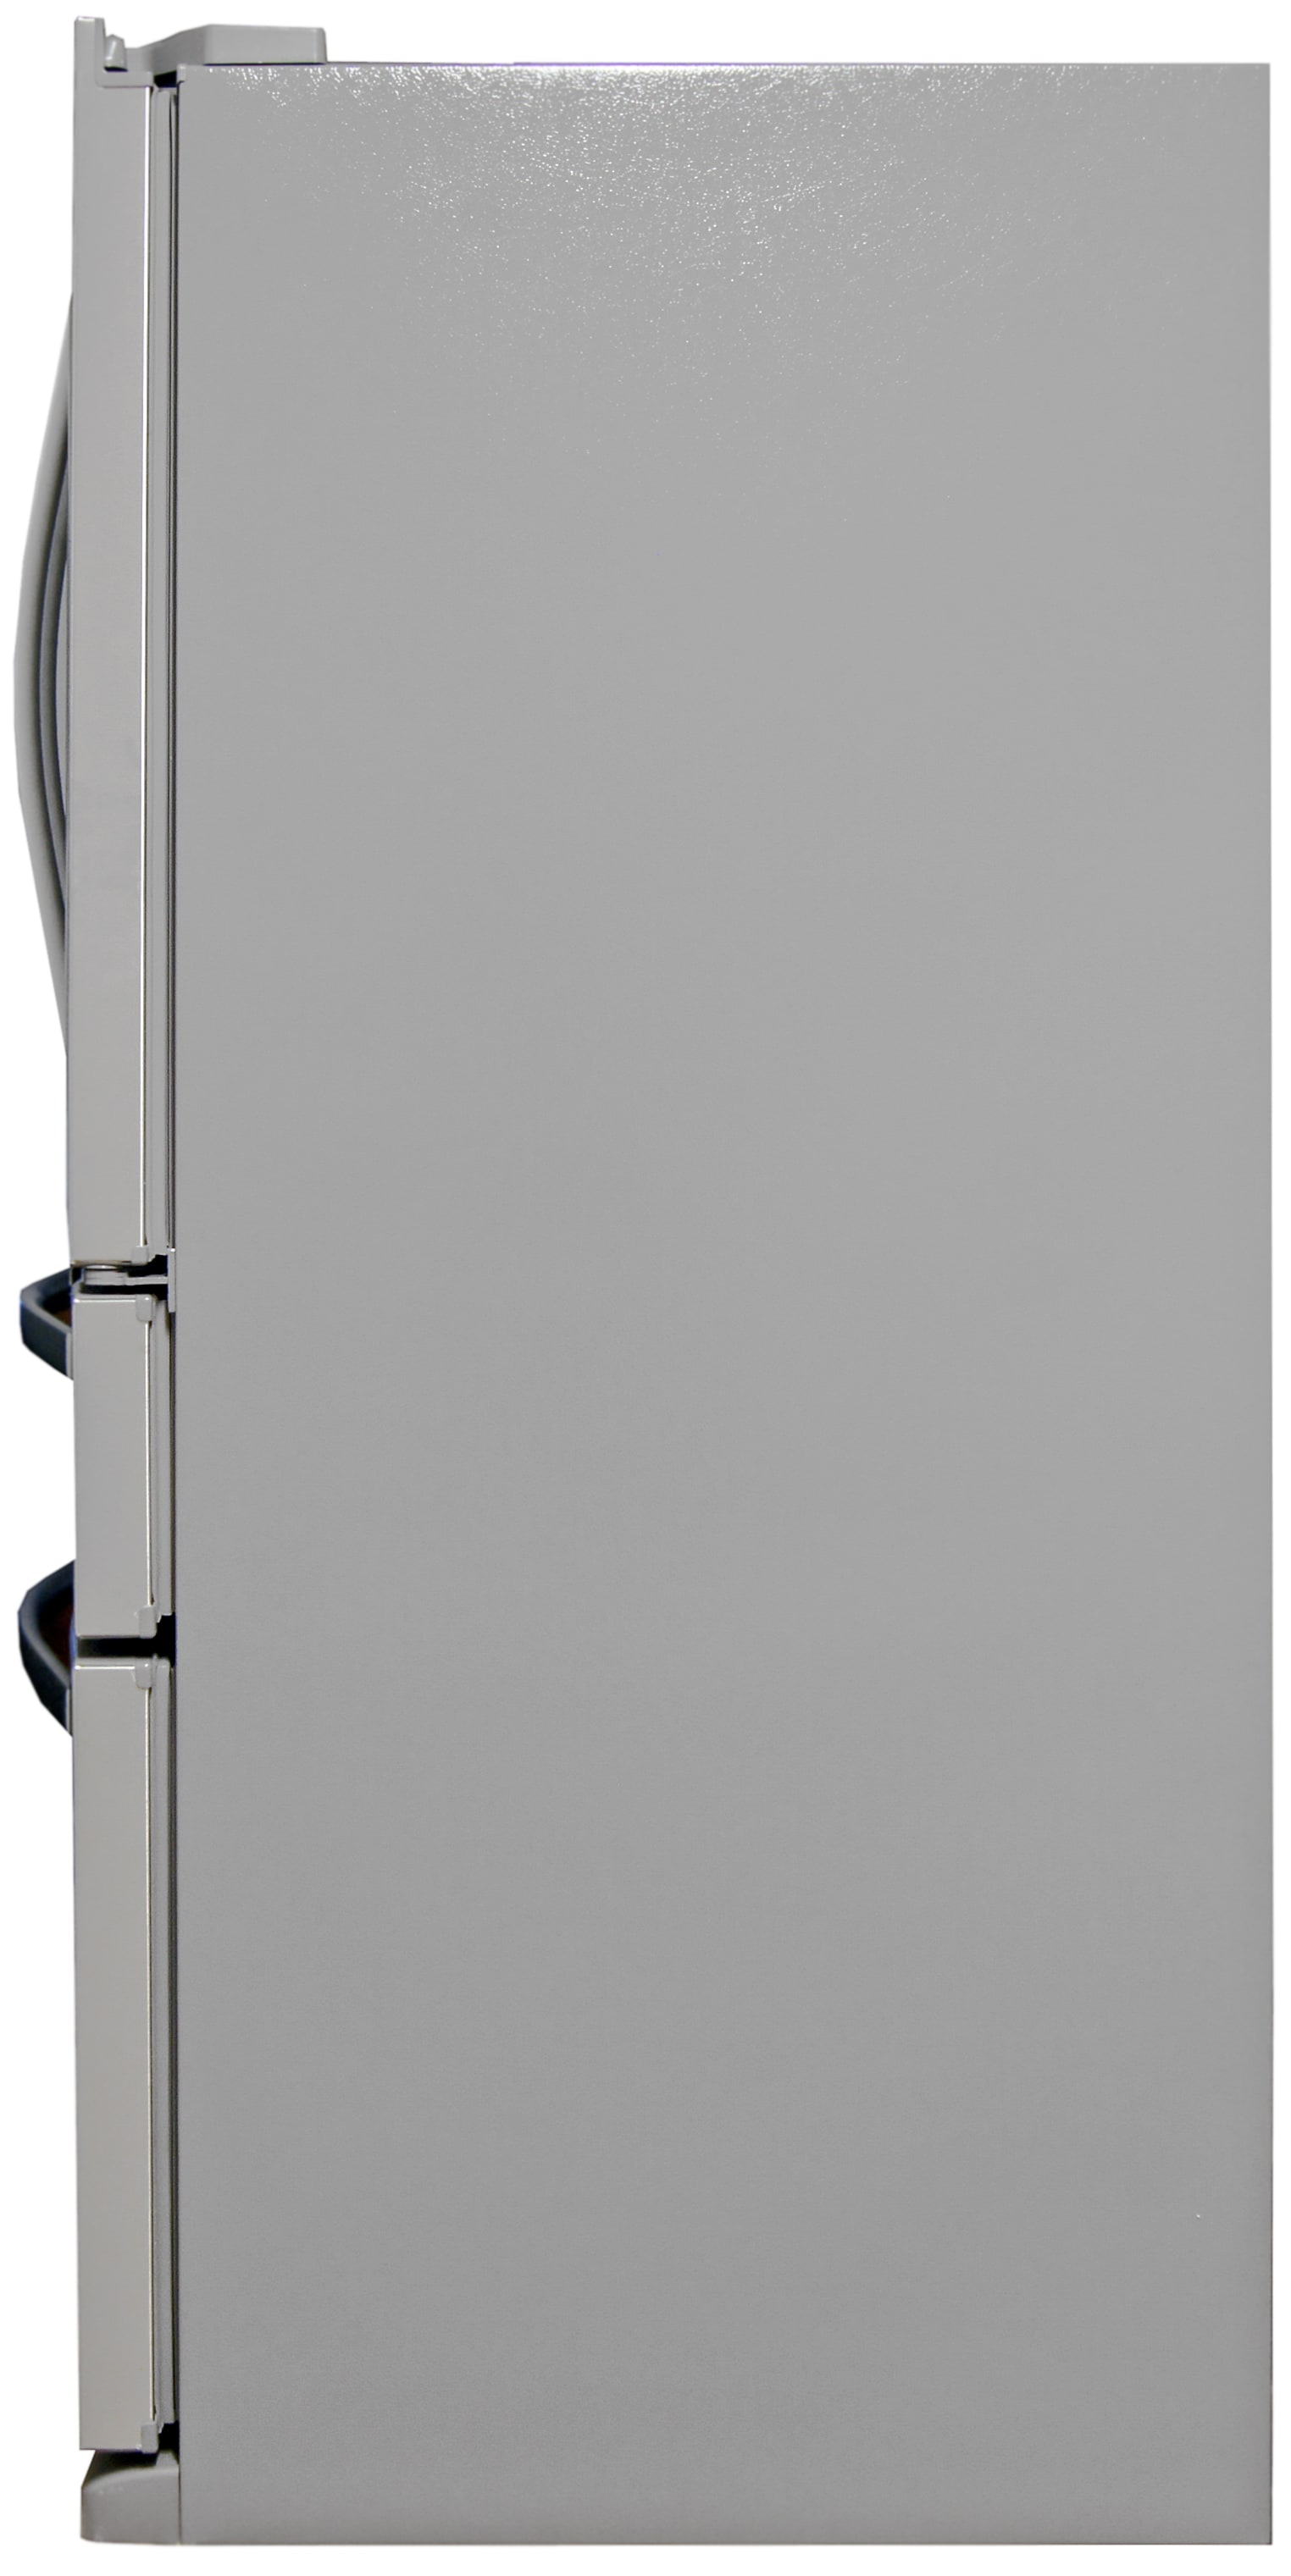 Grey sides are standard for stainless fridges.